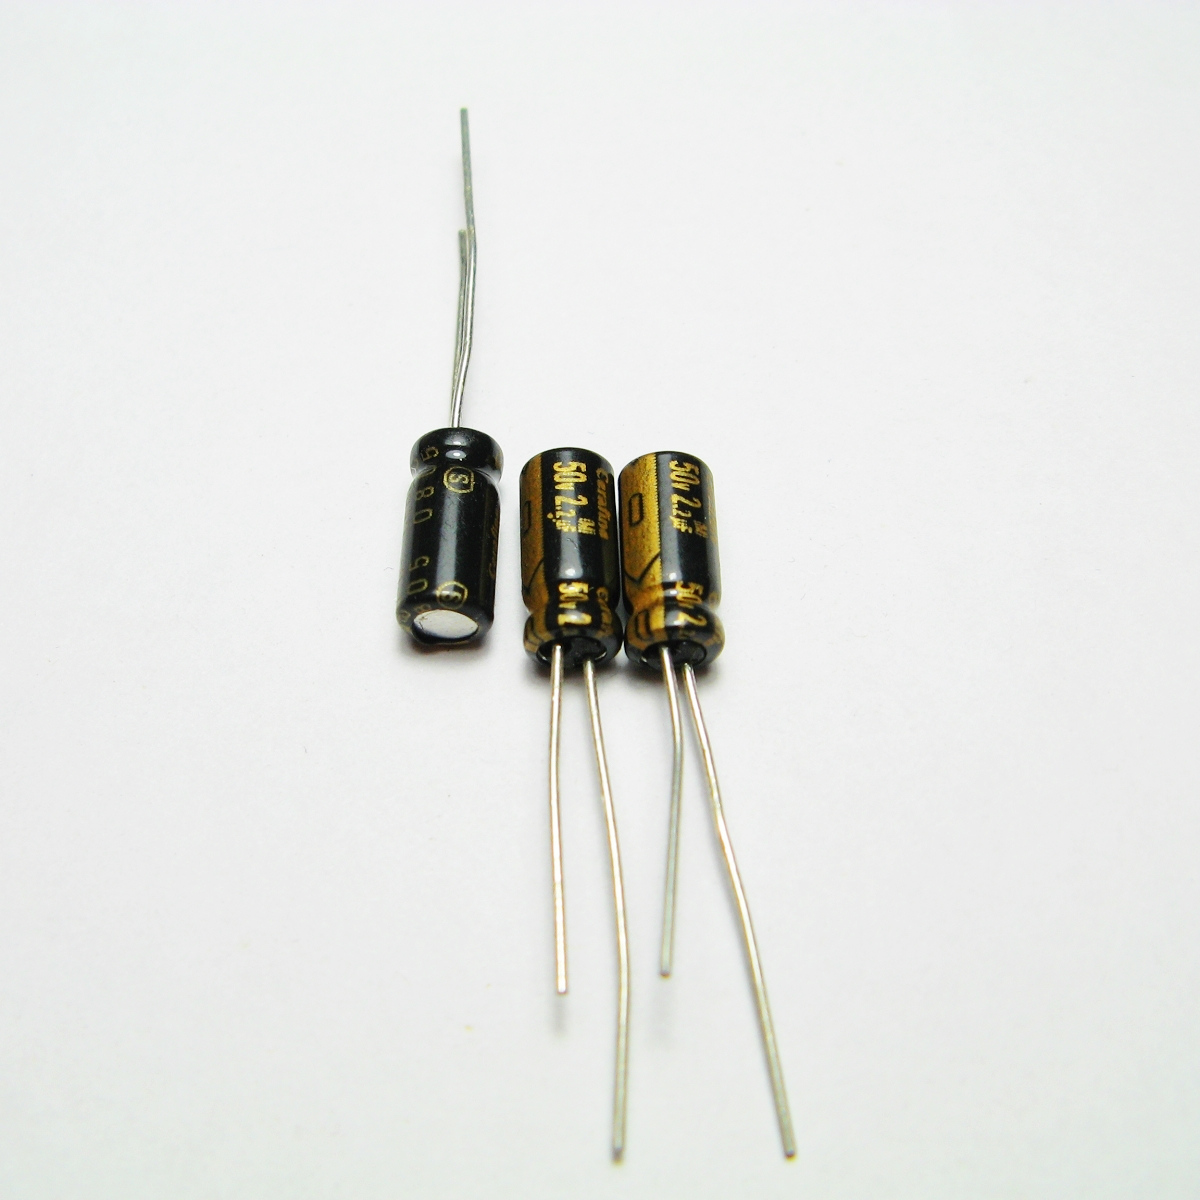 20pcs Thailand Elna Cerafine 50v2 2uf Audio Capacitor